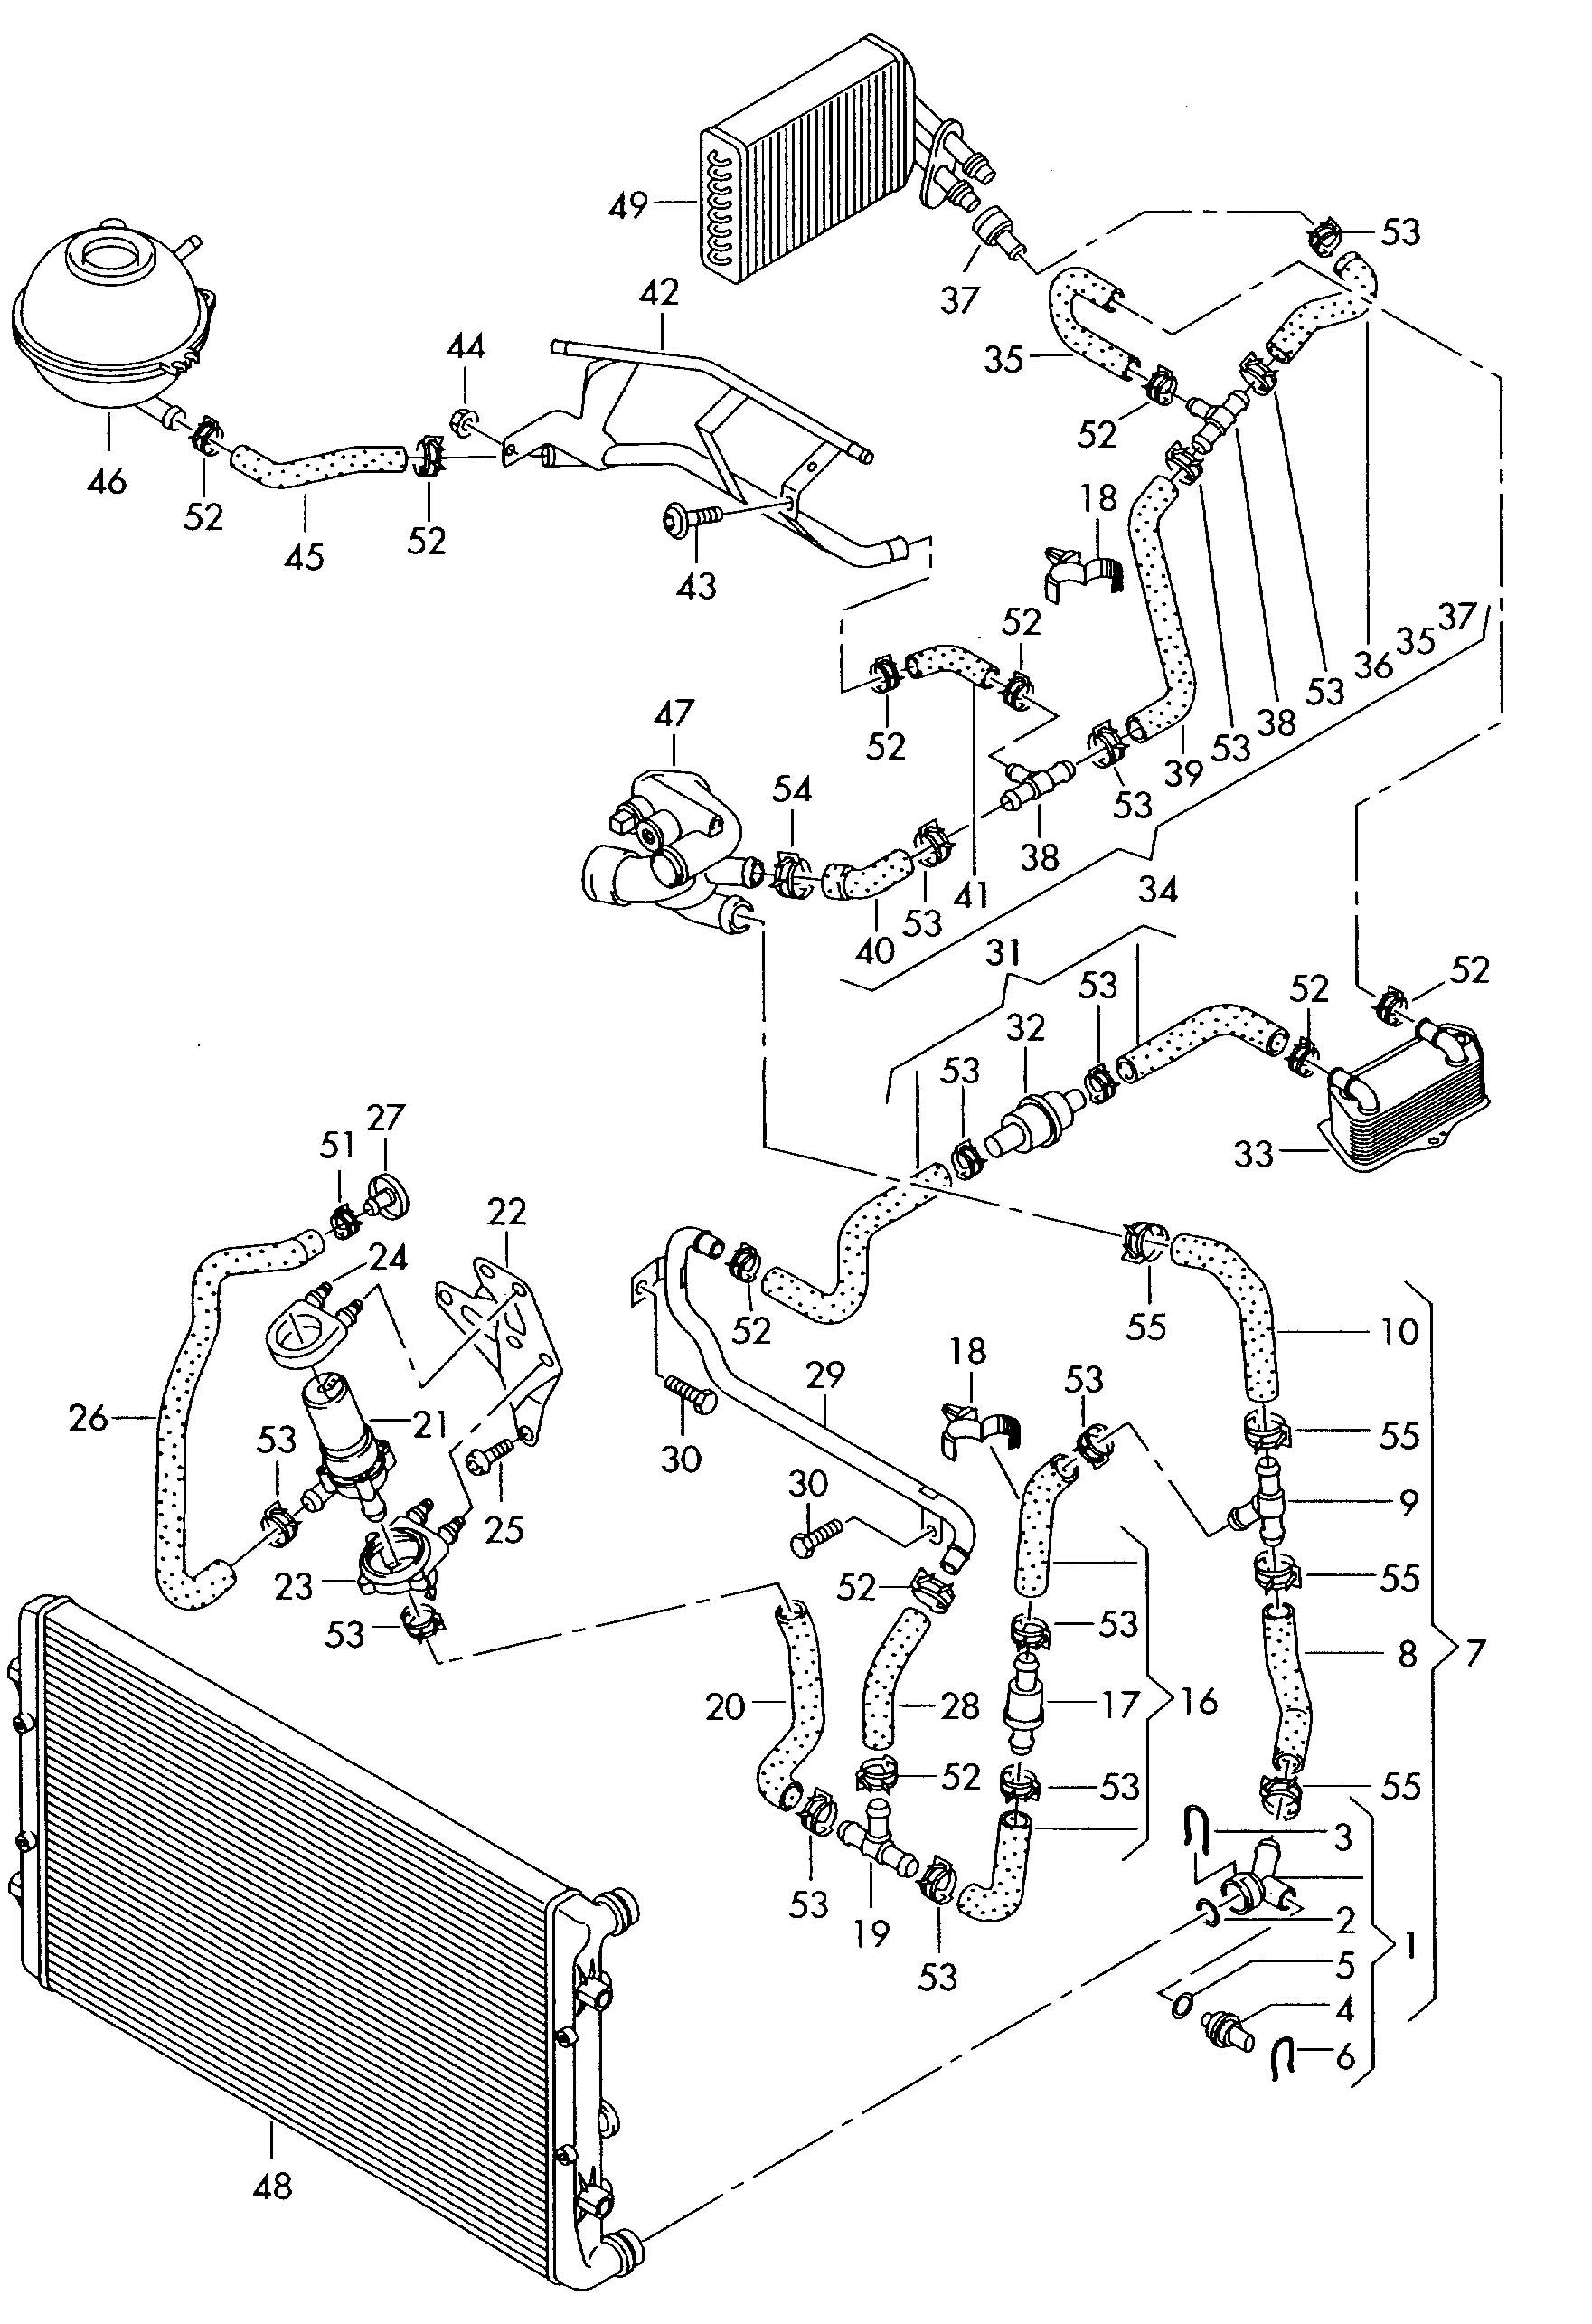 2007 Audi A4 Engine Diagram 2003 Audi All Road Engine Diagram Wiring Diagrams • Of 2007 Audi A4 Engine Diagram